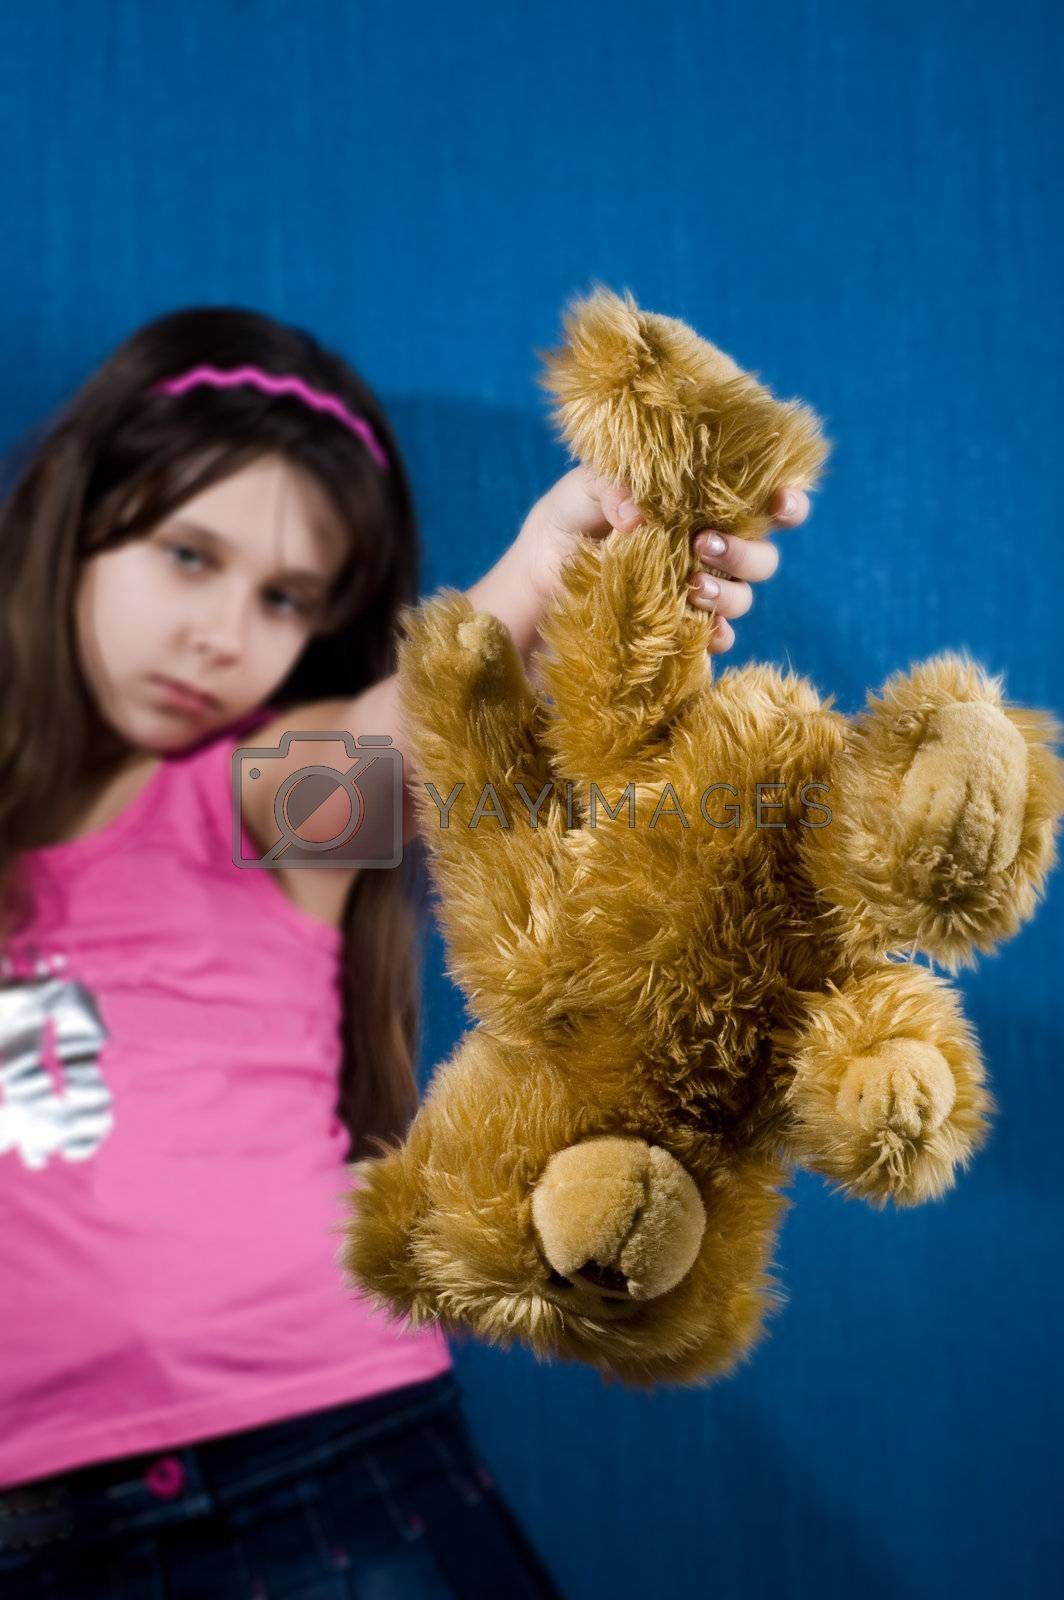 Royalty free image of Angry girl holding teddybear by iribo